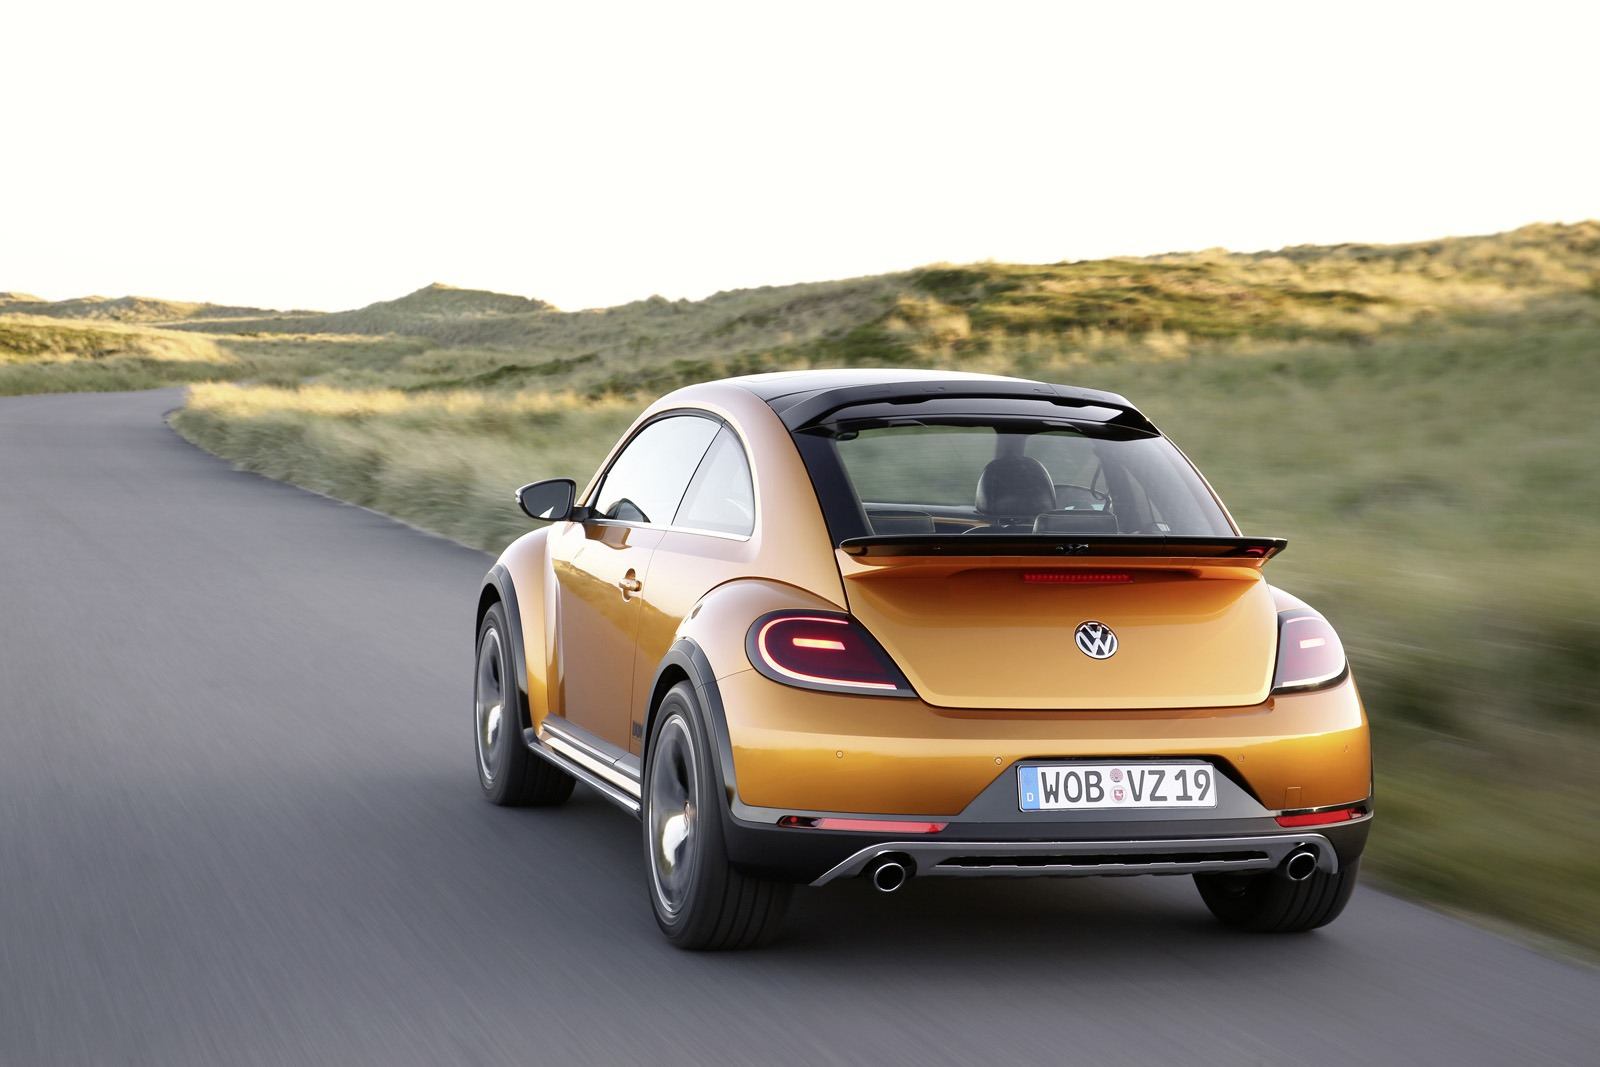 VW Beetle Dune Concept Takes to Beach to Show Its Production Readiness - autoevolution